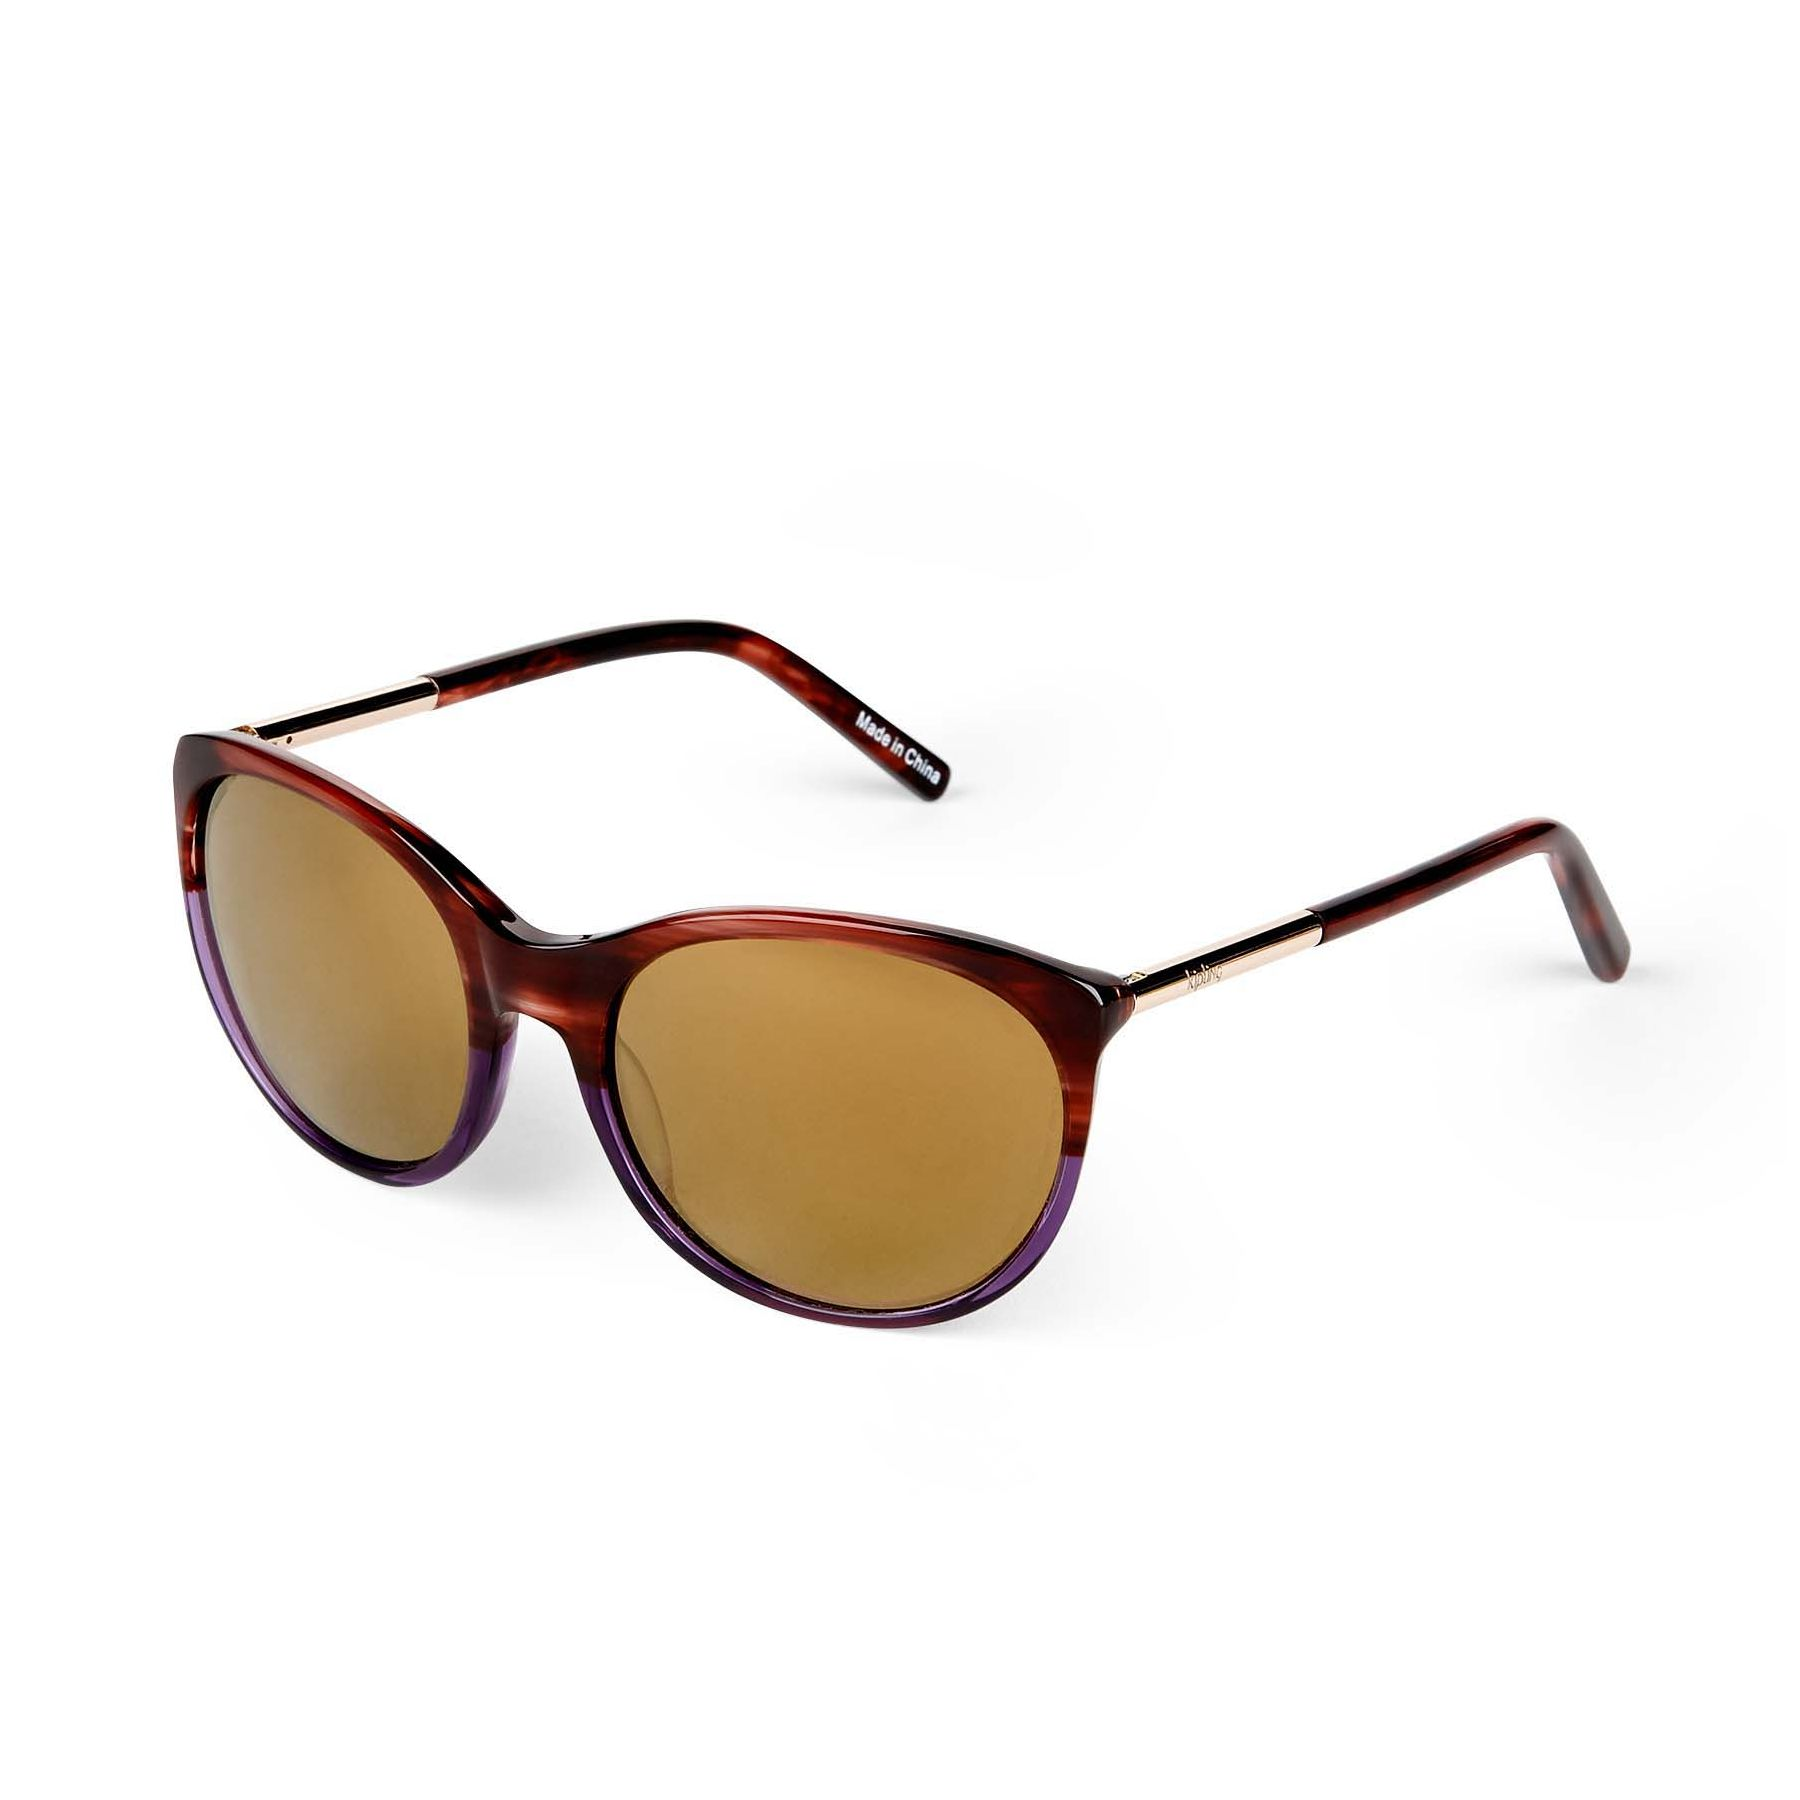 SUNGLASS RIVIER by Kipling - Front view